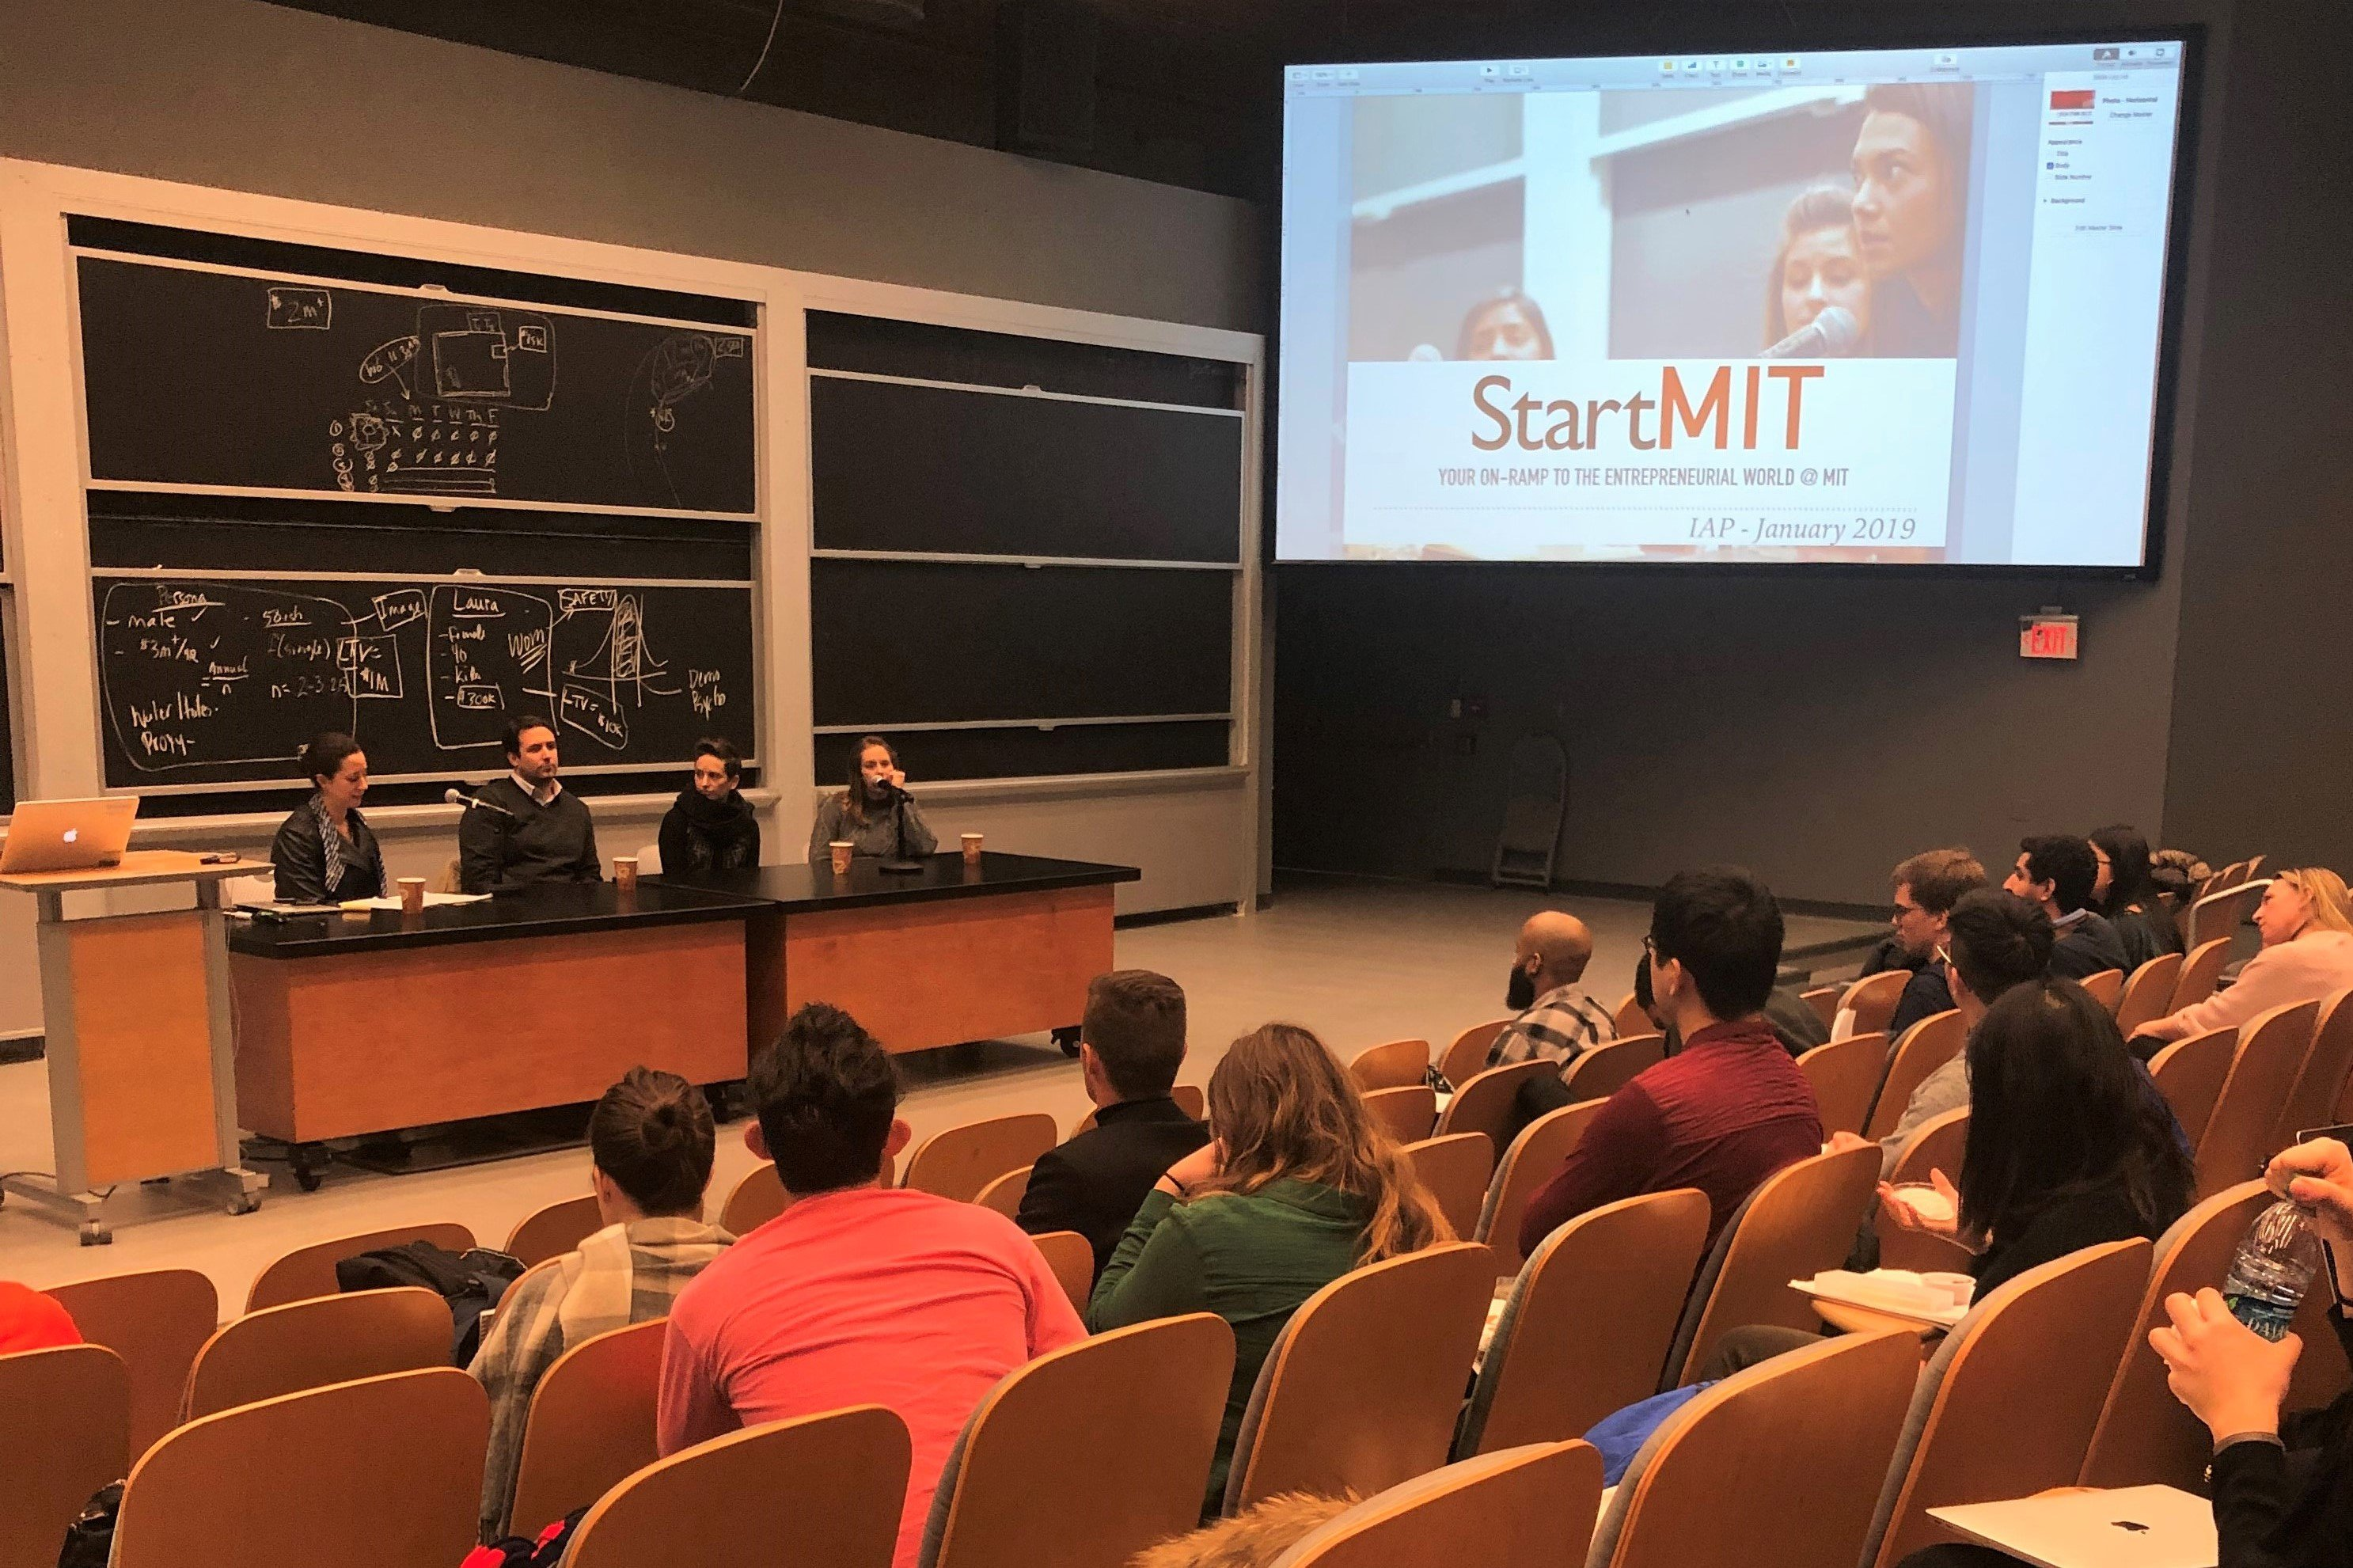 Heather Ames Joins a Panel at StartMIT to Give Insight to MIT Students Interested in Entrepreneurship.